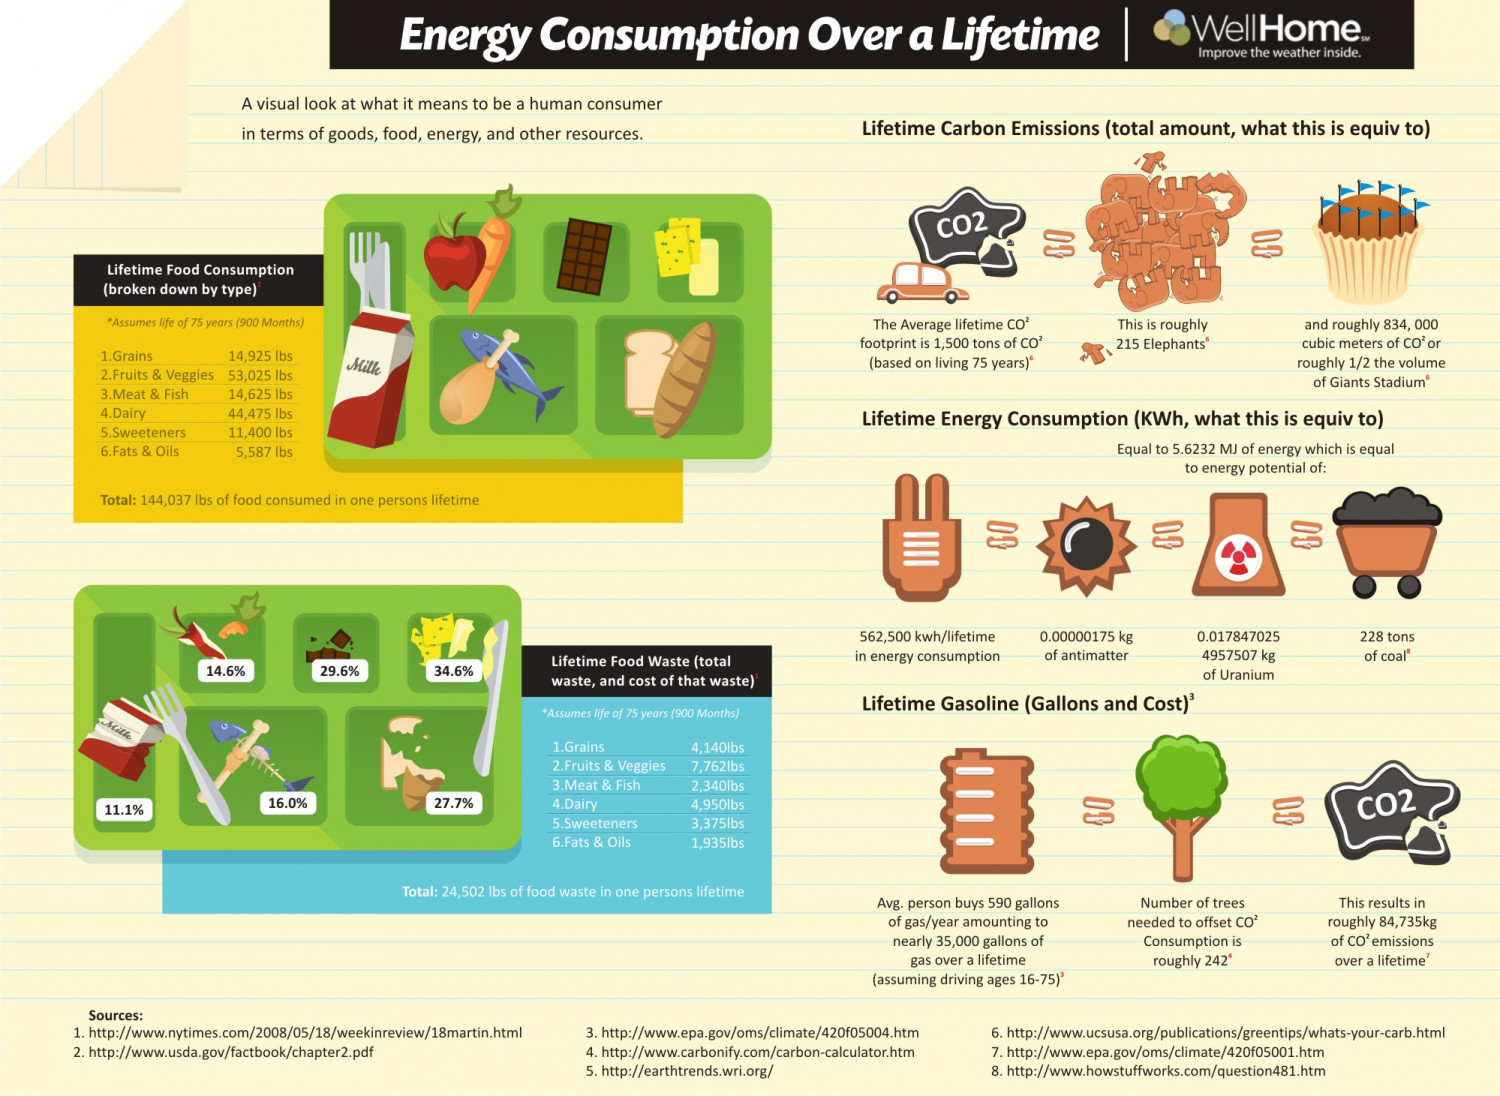 Energy Consumption Over a Lifetime Infographic